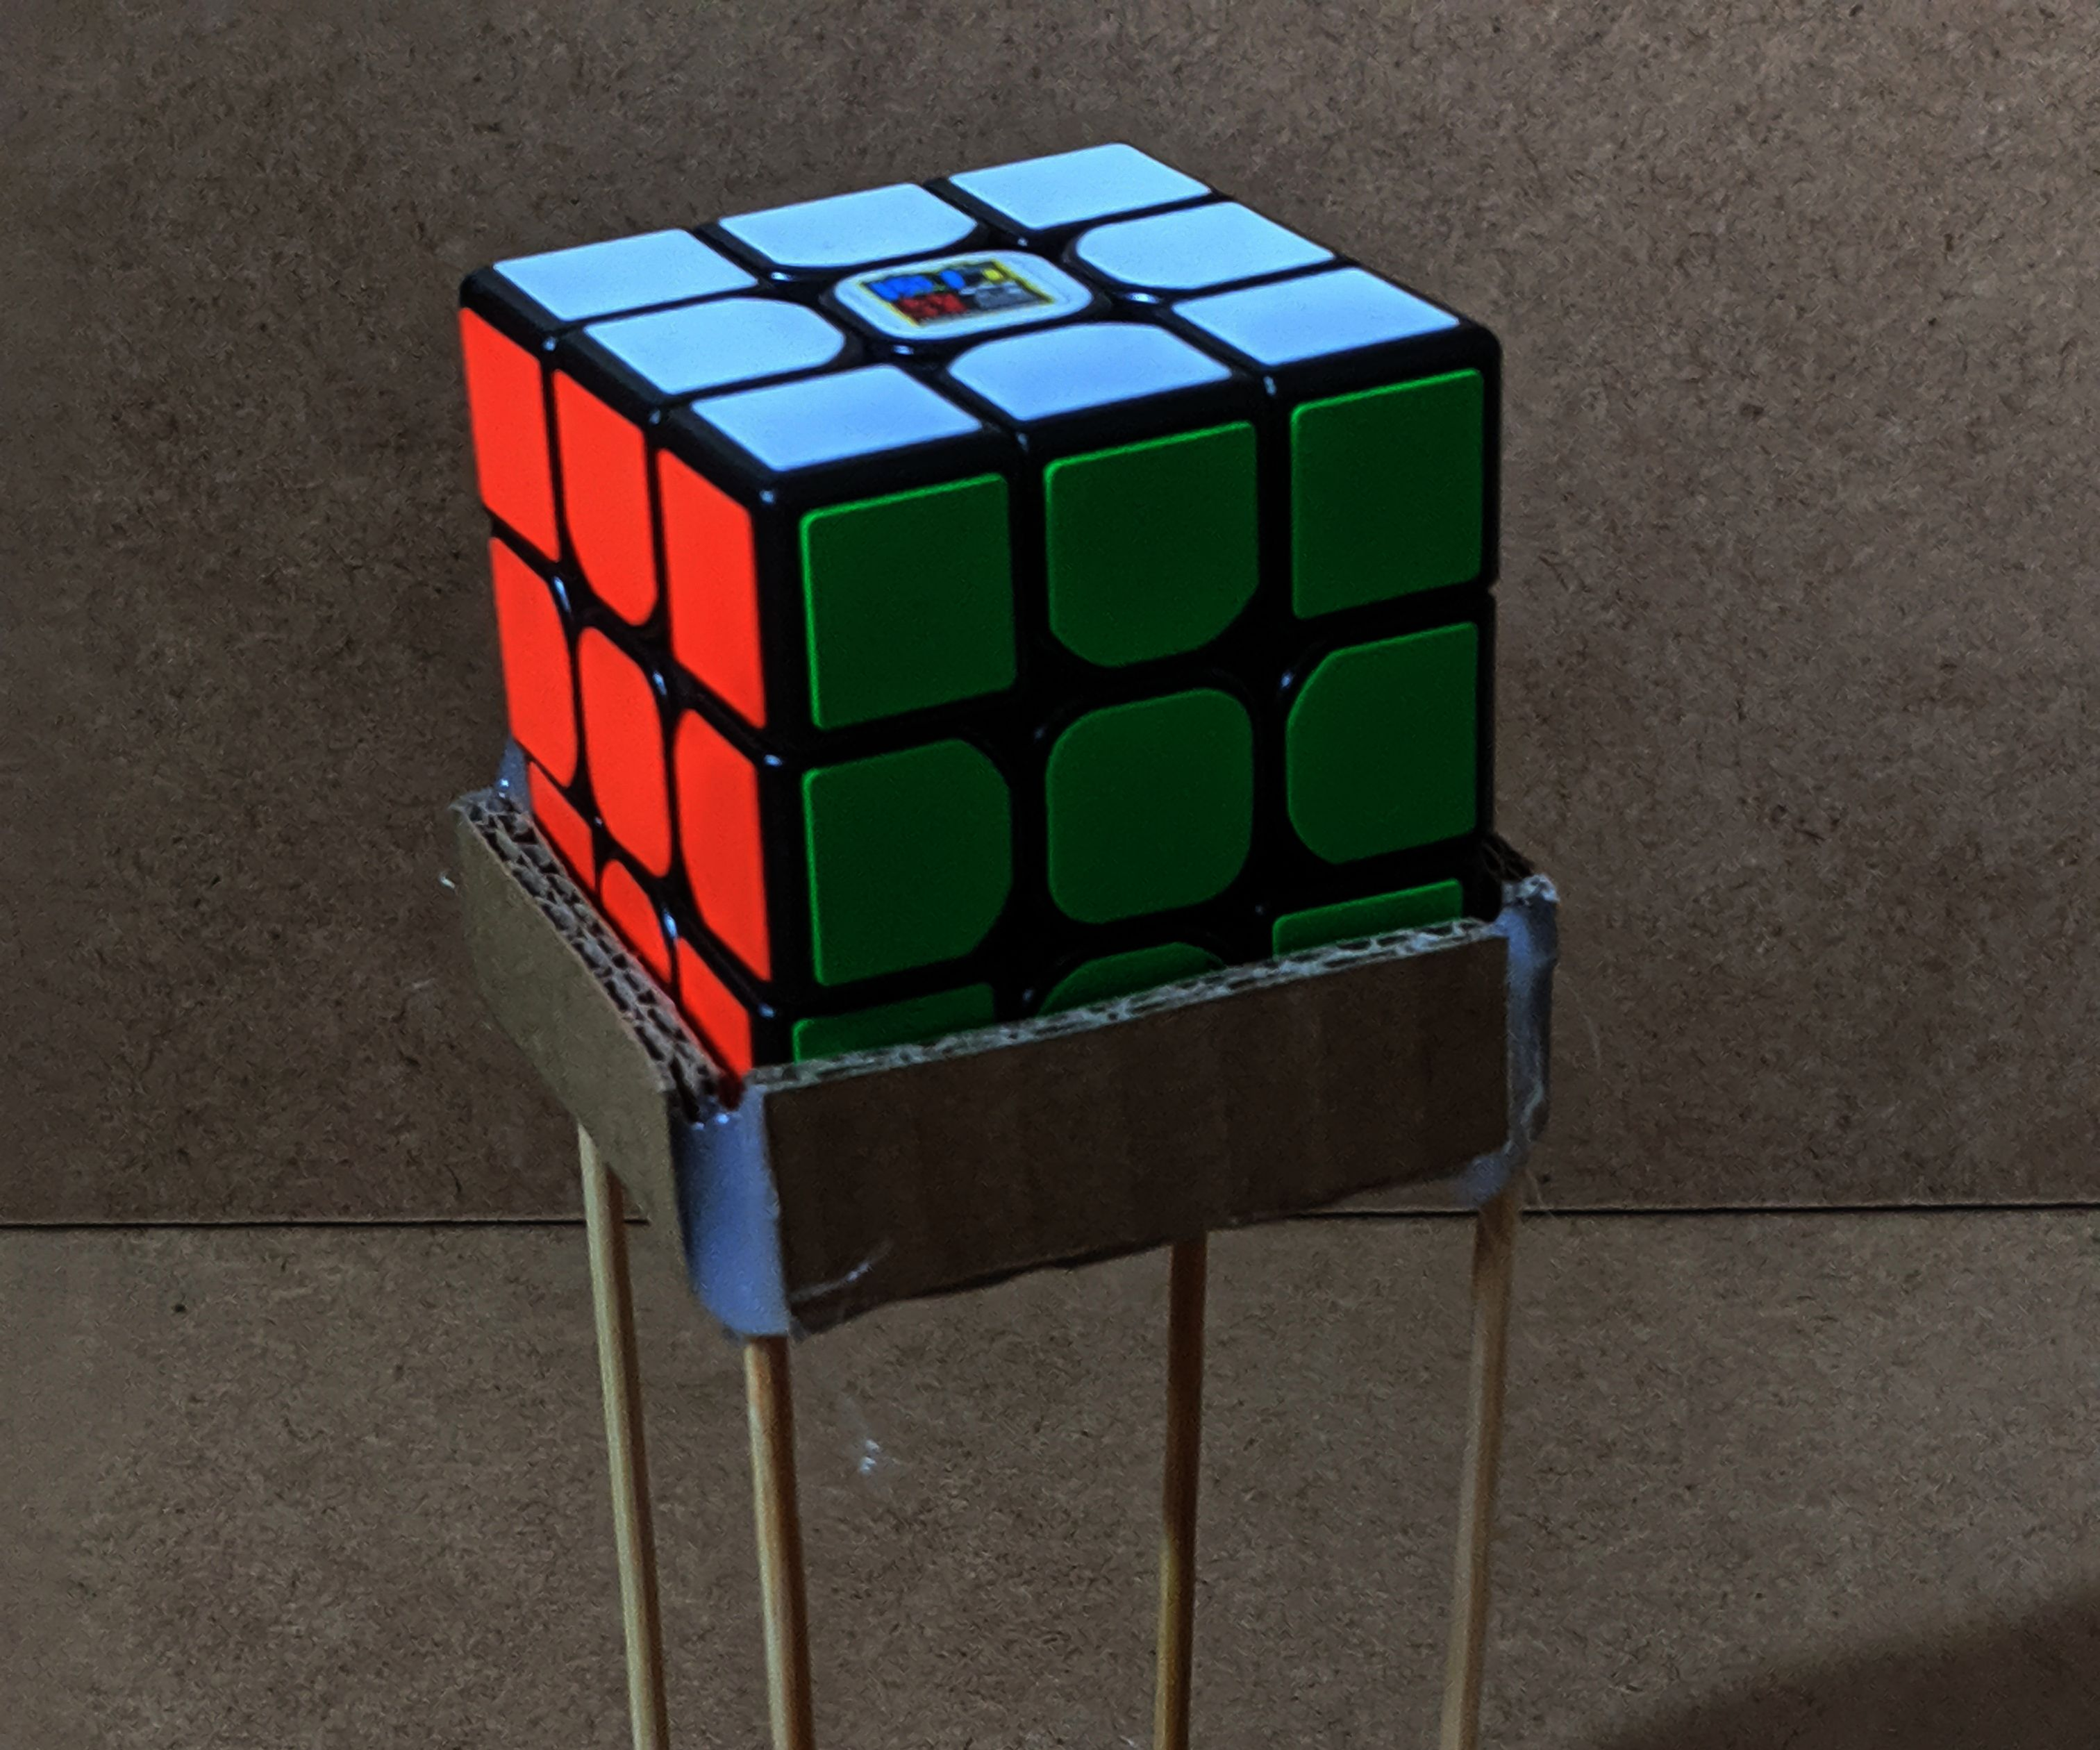 How to Make a Rubik's Cube Stand V2